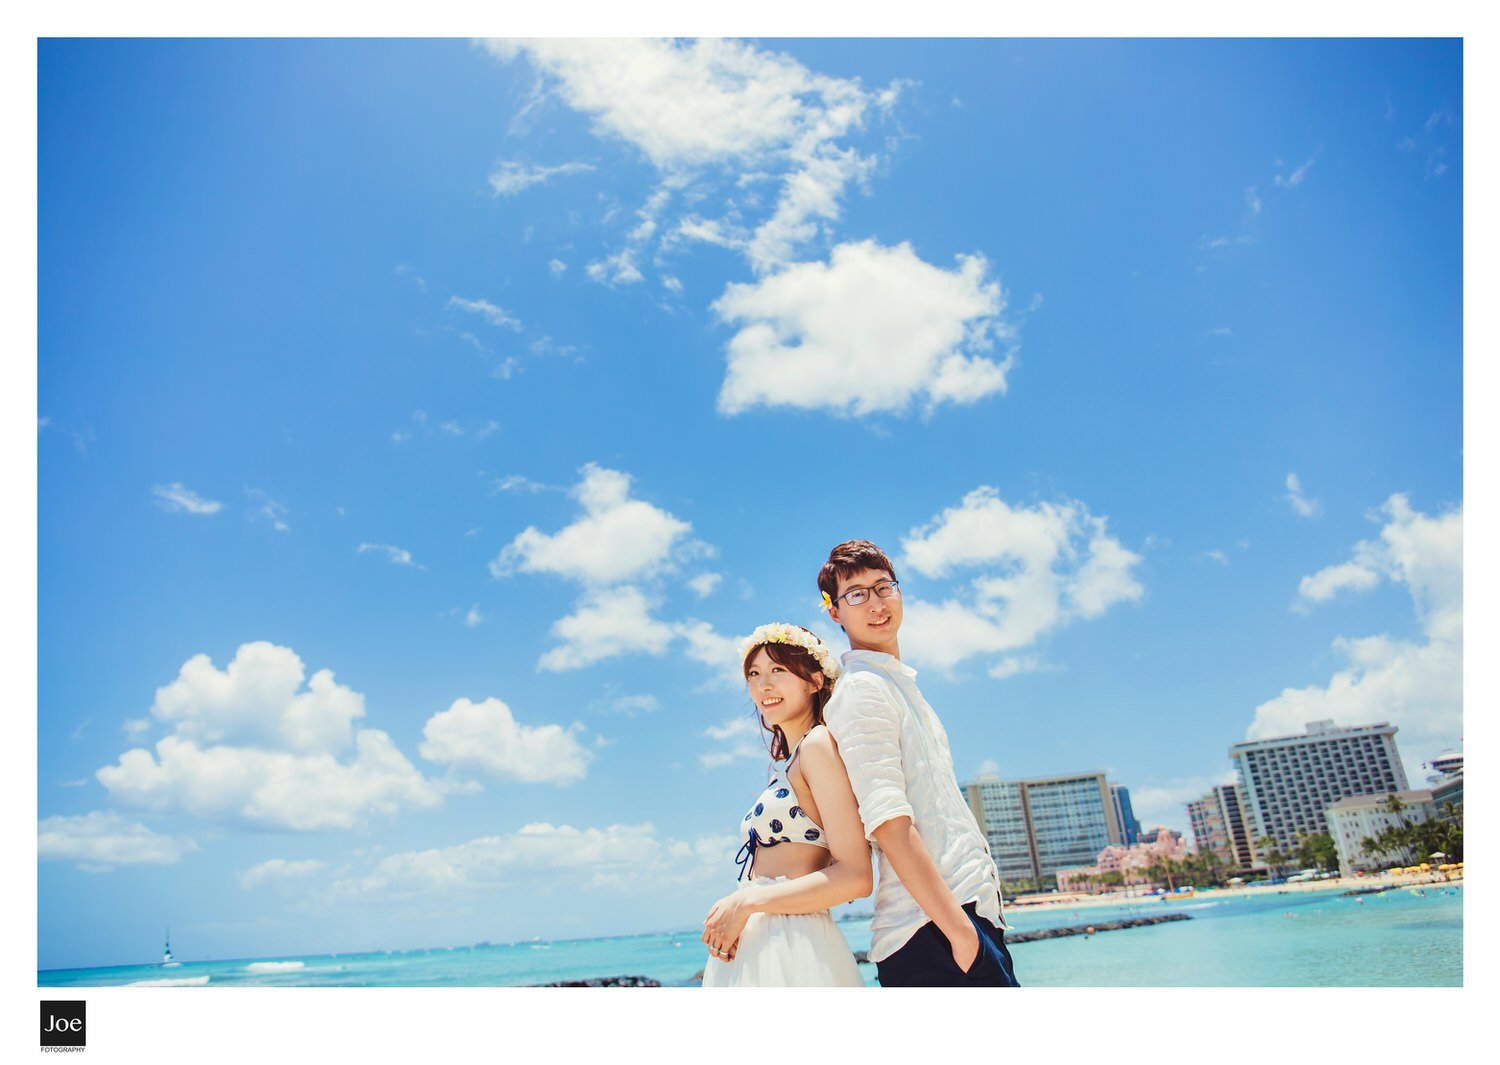 080-waikiki-beach-hawaii-pre-wedding-tiffany-tony-joe-fotography.jpg